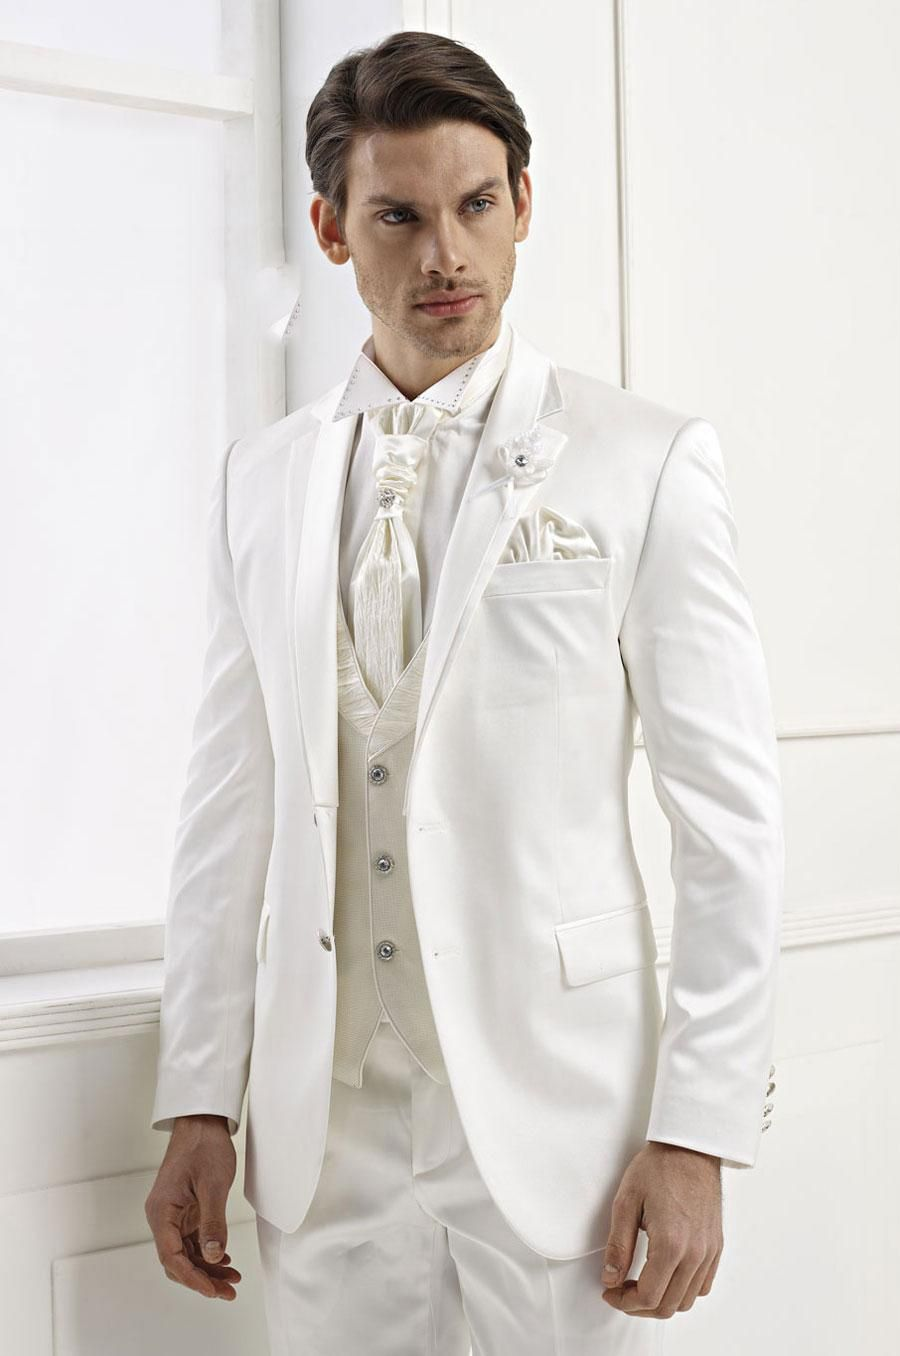 white wedding suits for Men shawl Lapel groom Tuxedos Groomsmen ...